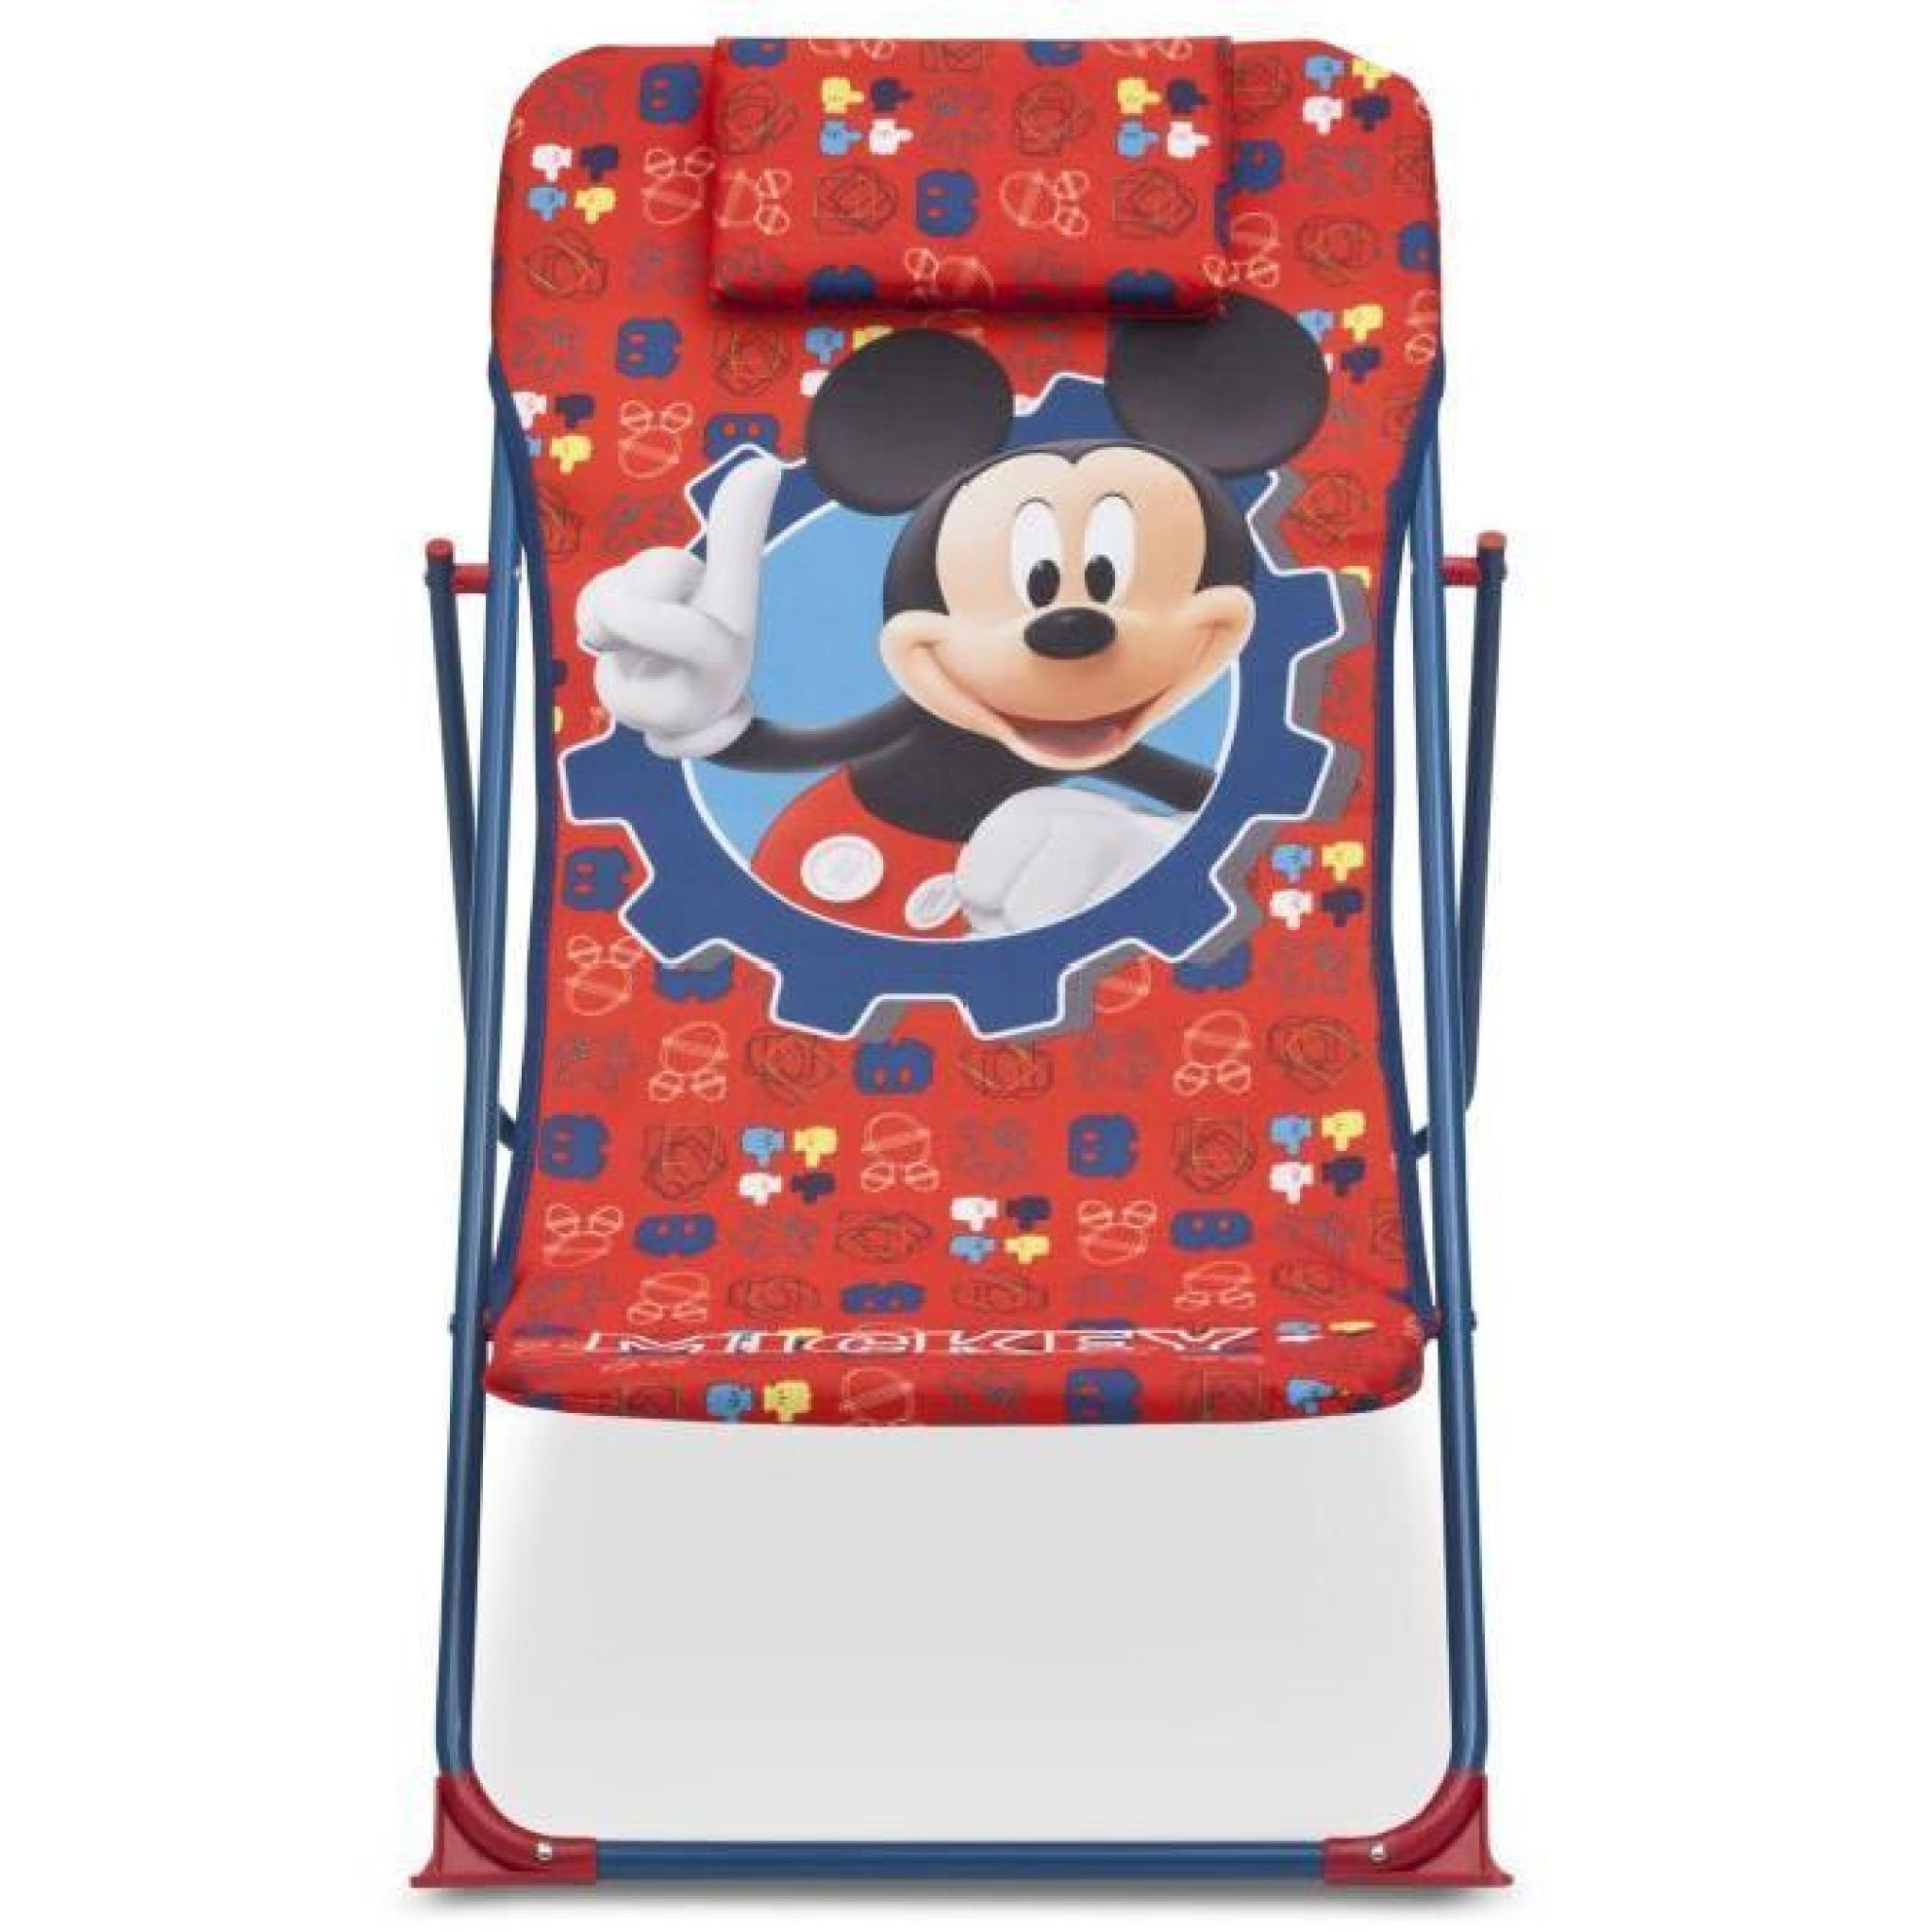 mickey chaise de plage transat enfant achat vente chaise longue enfant pas cher. Black Bedroom Furniture Sets. Home Design Ideas